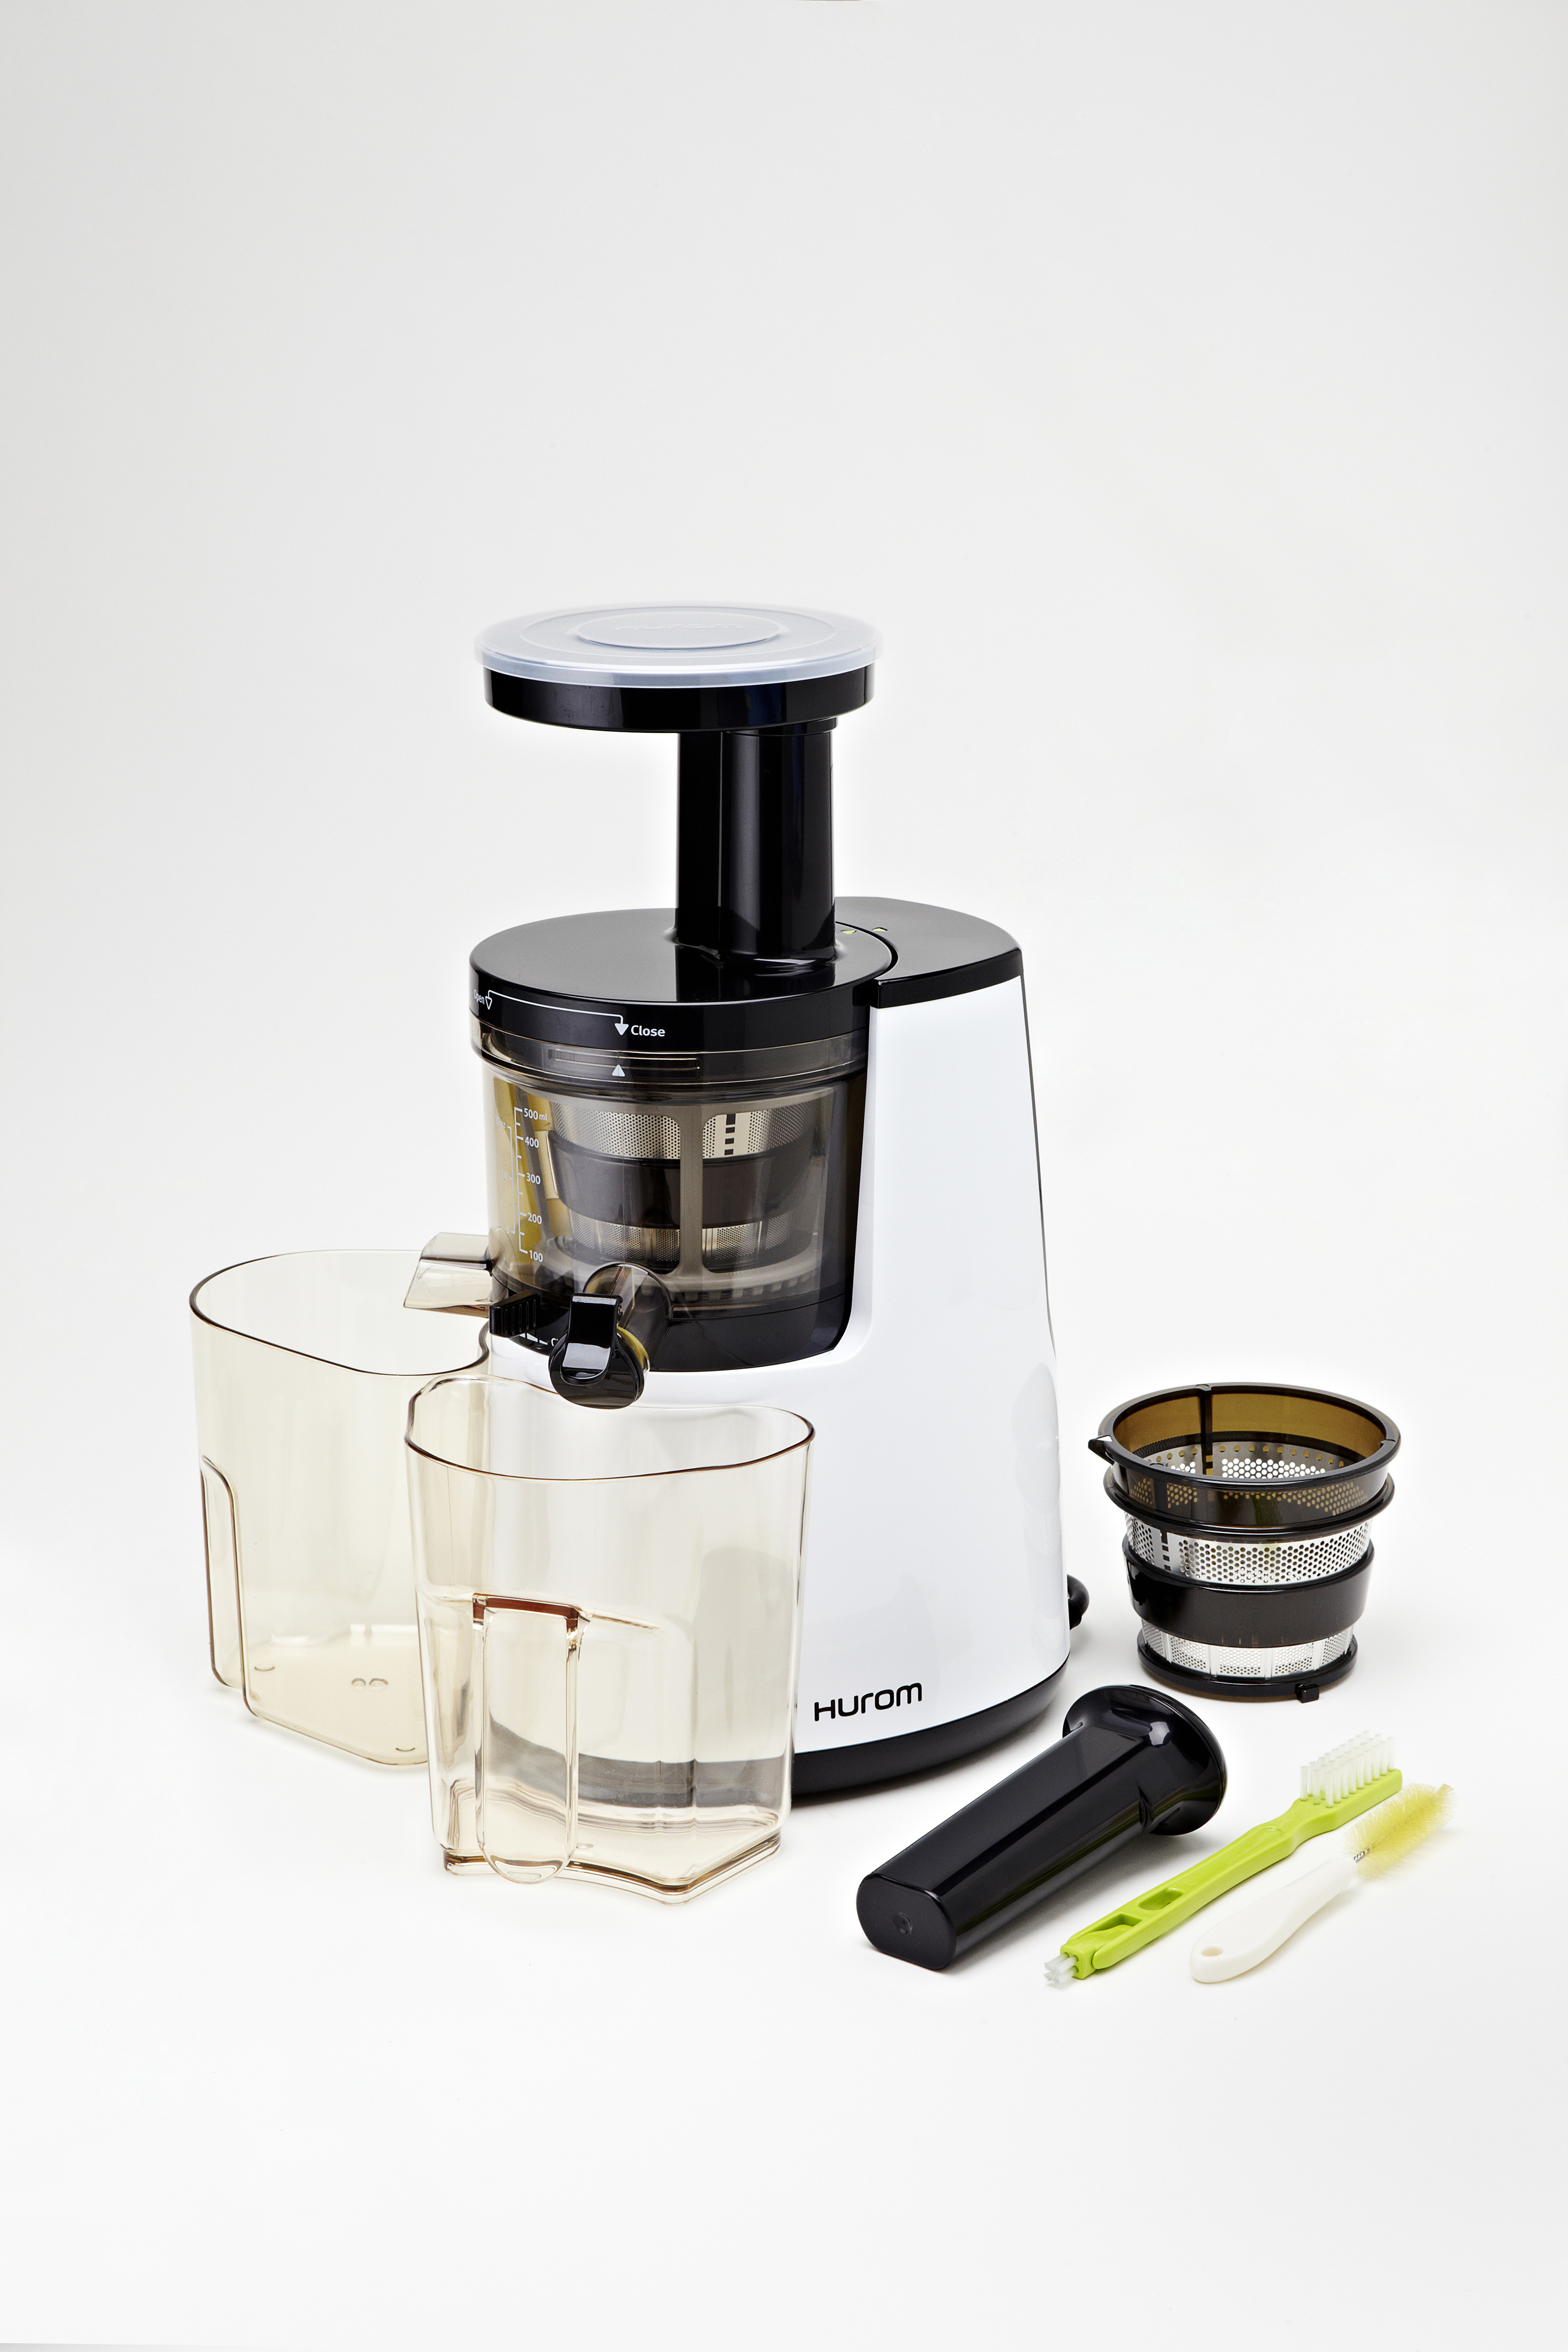 Hurom Original Slow Juicer : DNA Response Launches Multi-channel Online Sales Solution for Hurom Slow Juicers